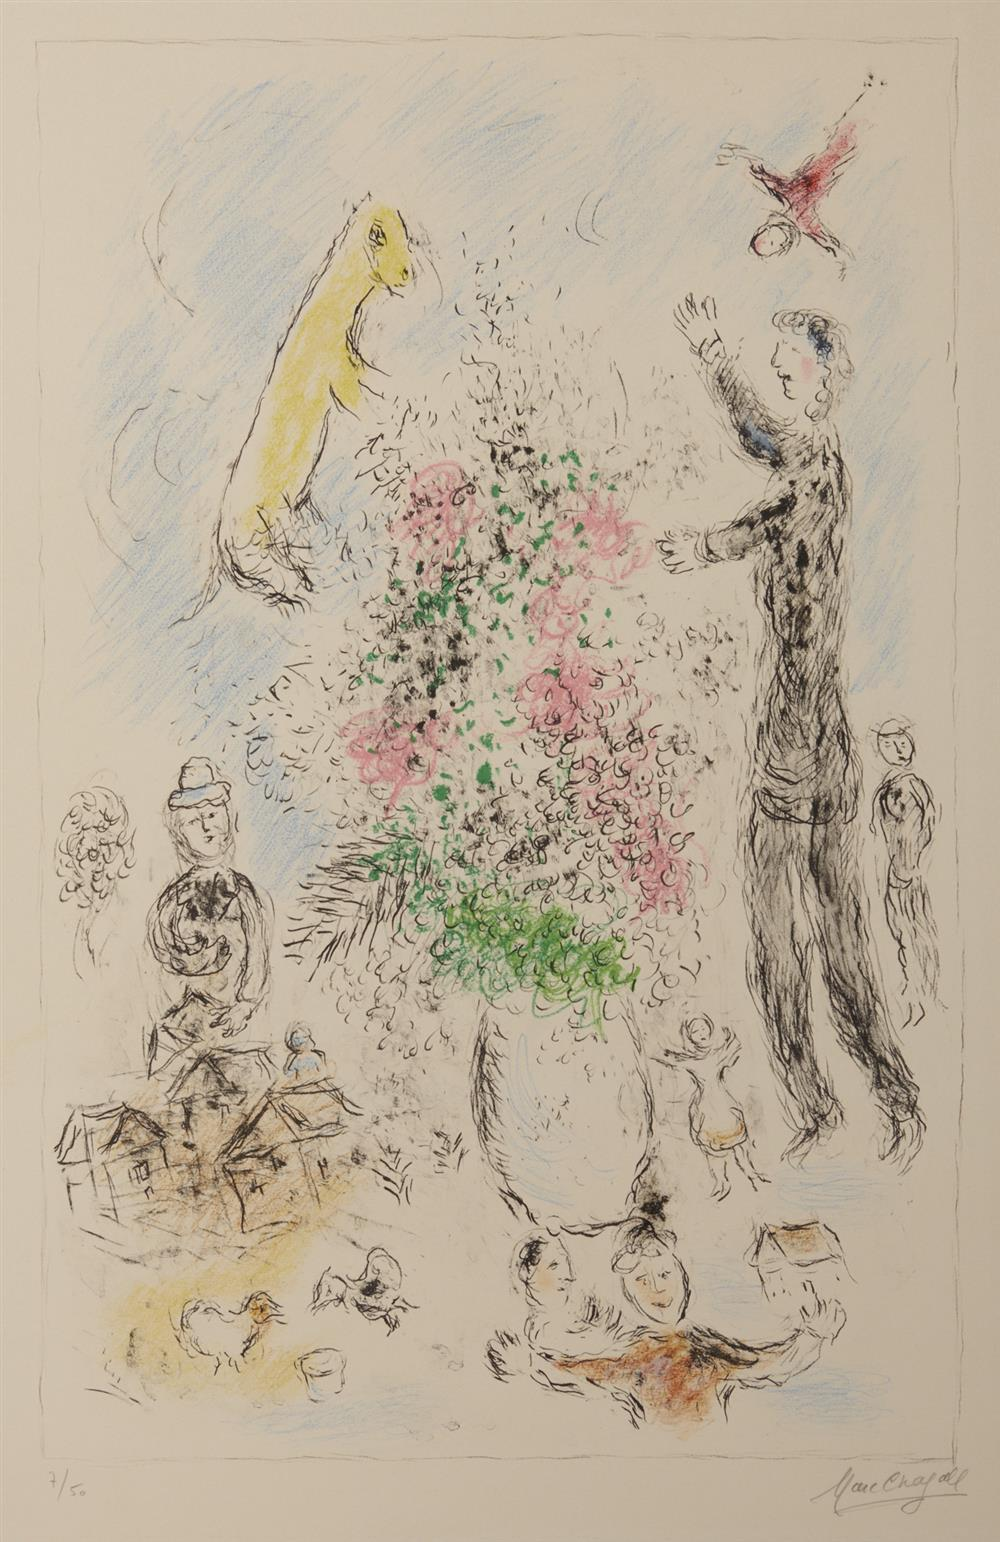 MARC CHAGALL, (French, 1887-1985), Les Lilas (M. 975), lithograph, sight: 36 x 23 in., frame: 55 x 41 in.